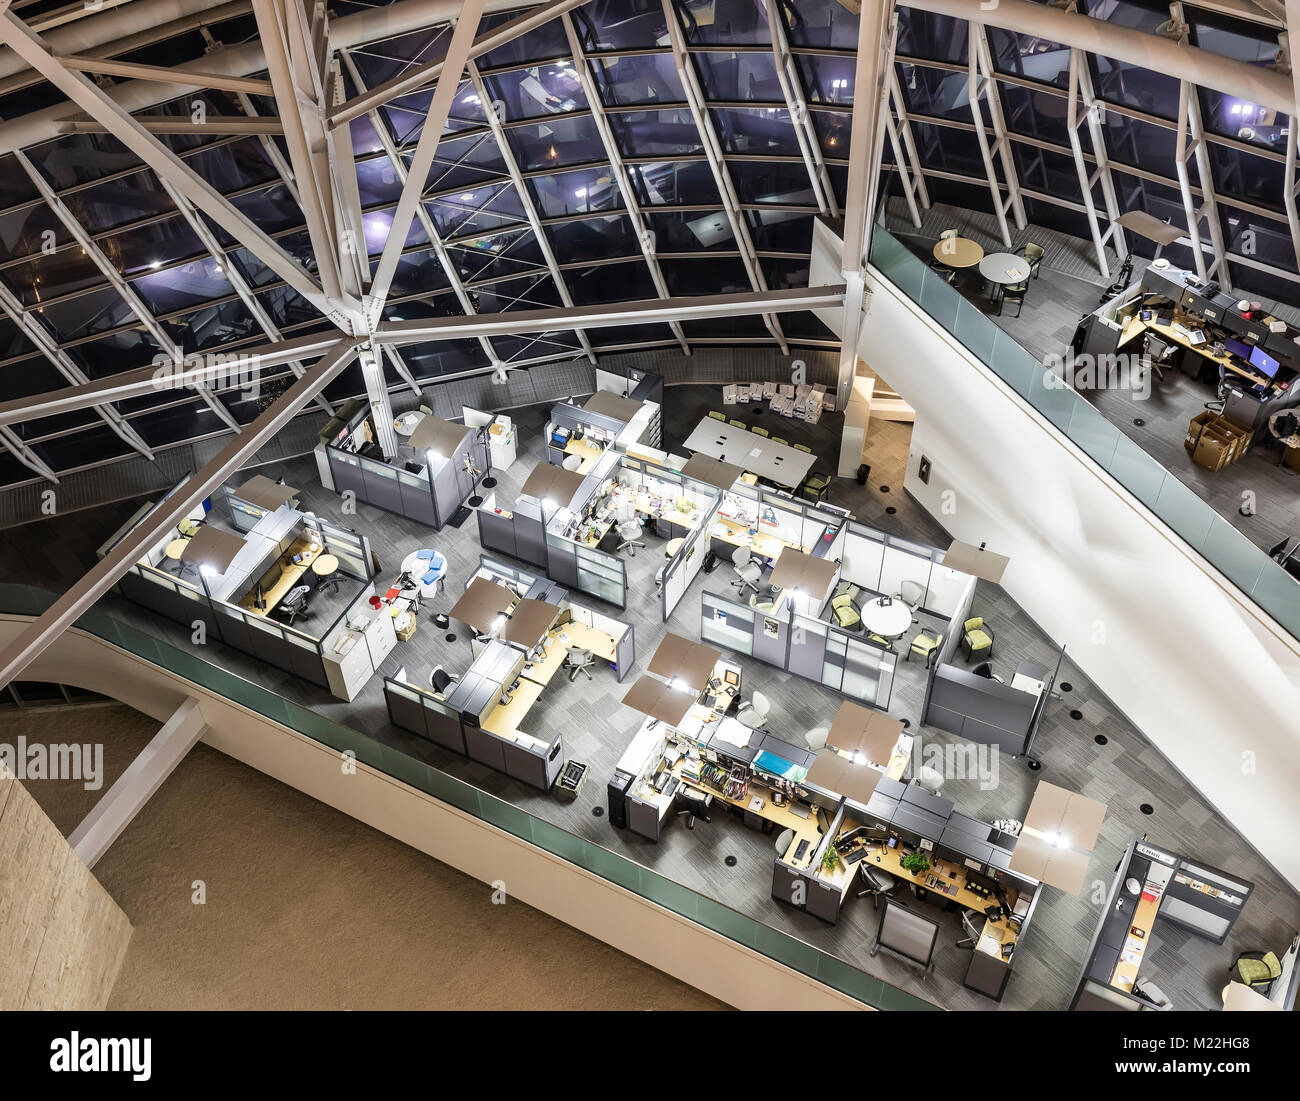 Office cubicles from above, Canadian Museum for Human Rights, Winnipeg, Manitoba, Canada. - Stock Image